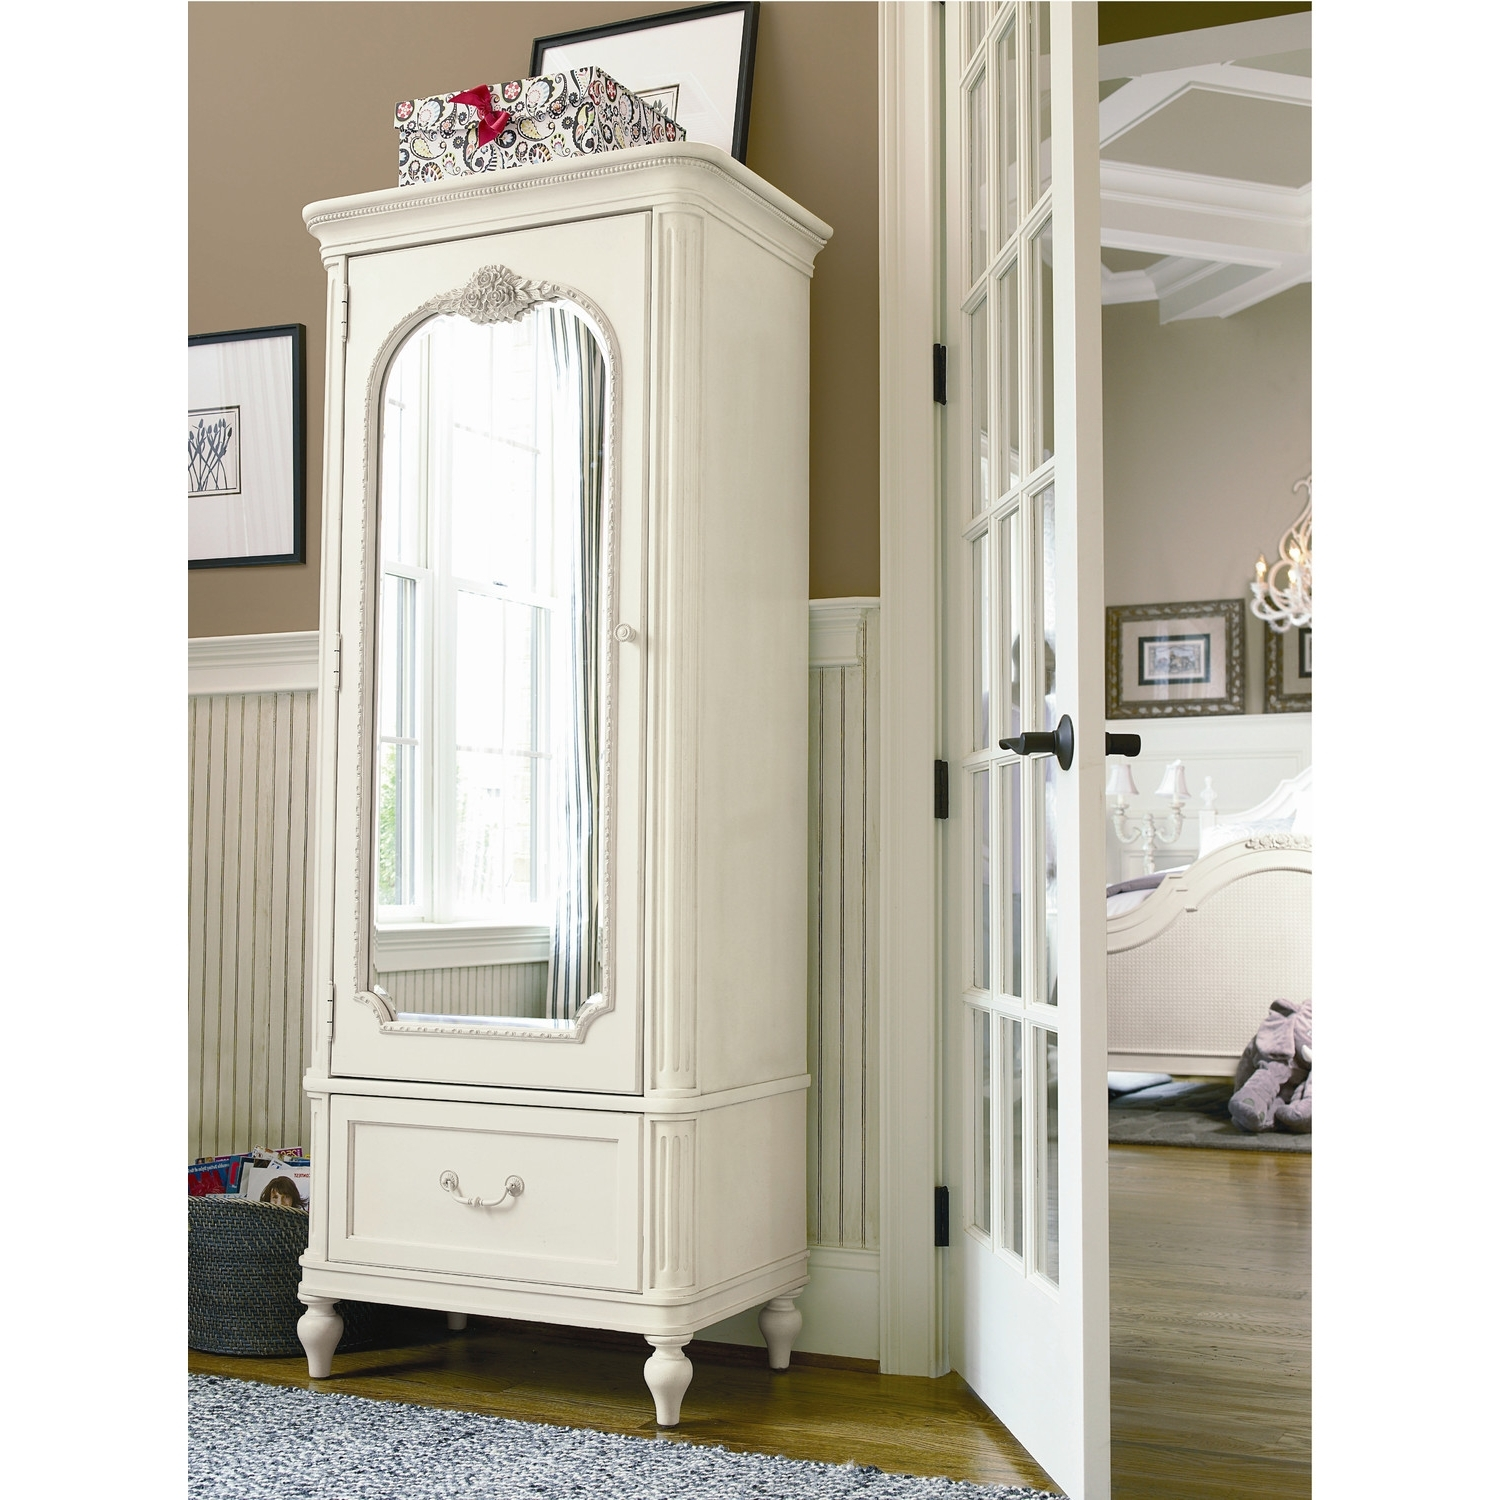 Famous Bedroom: Antique Interior Storage Design With Wardrobe Armoire Regarding Wicker Armoire Wardrobes (View 3 of 15)